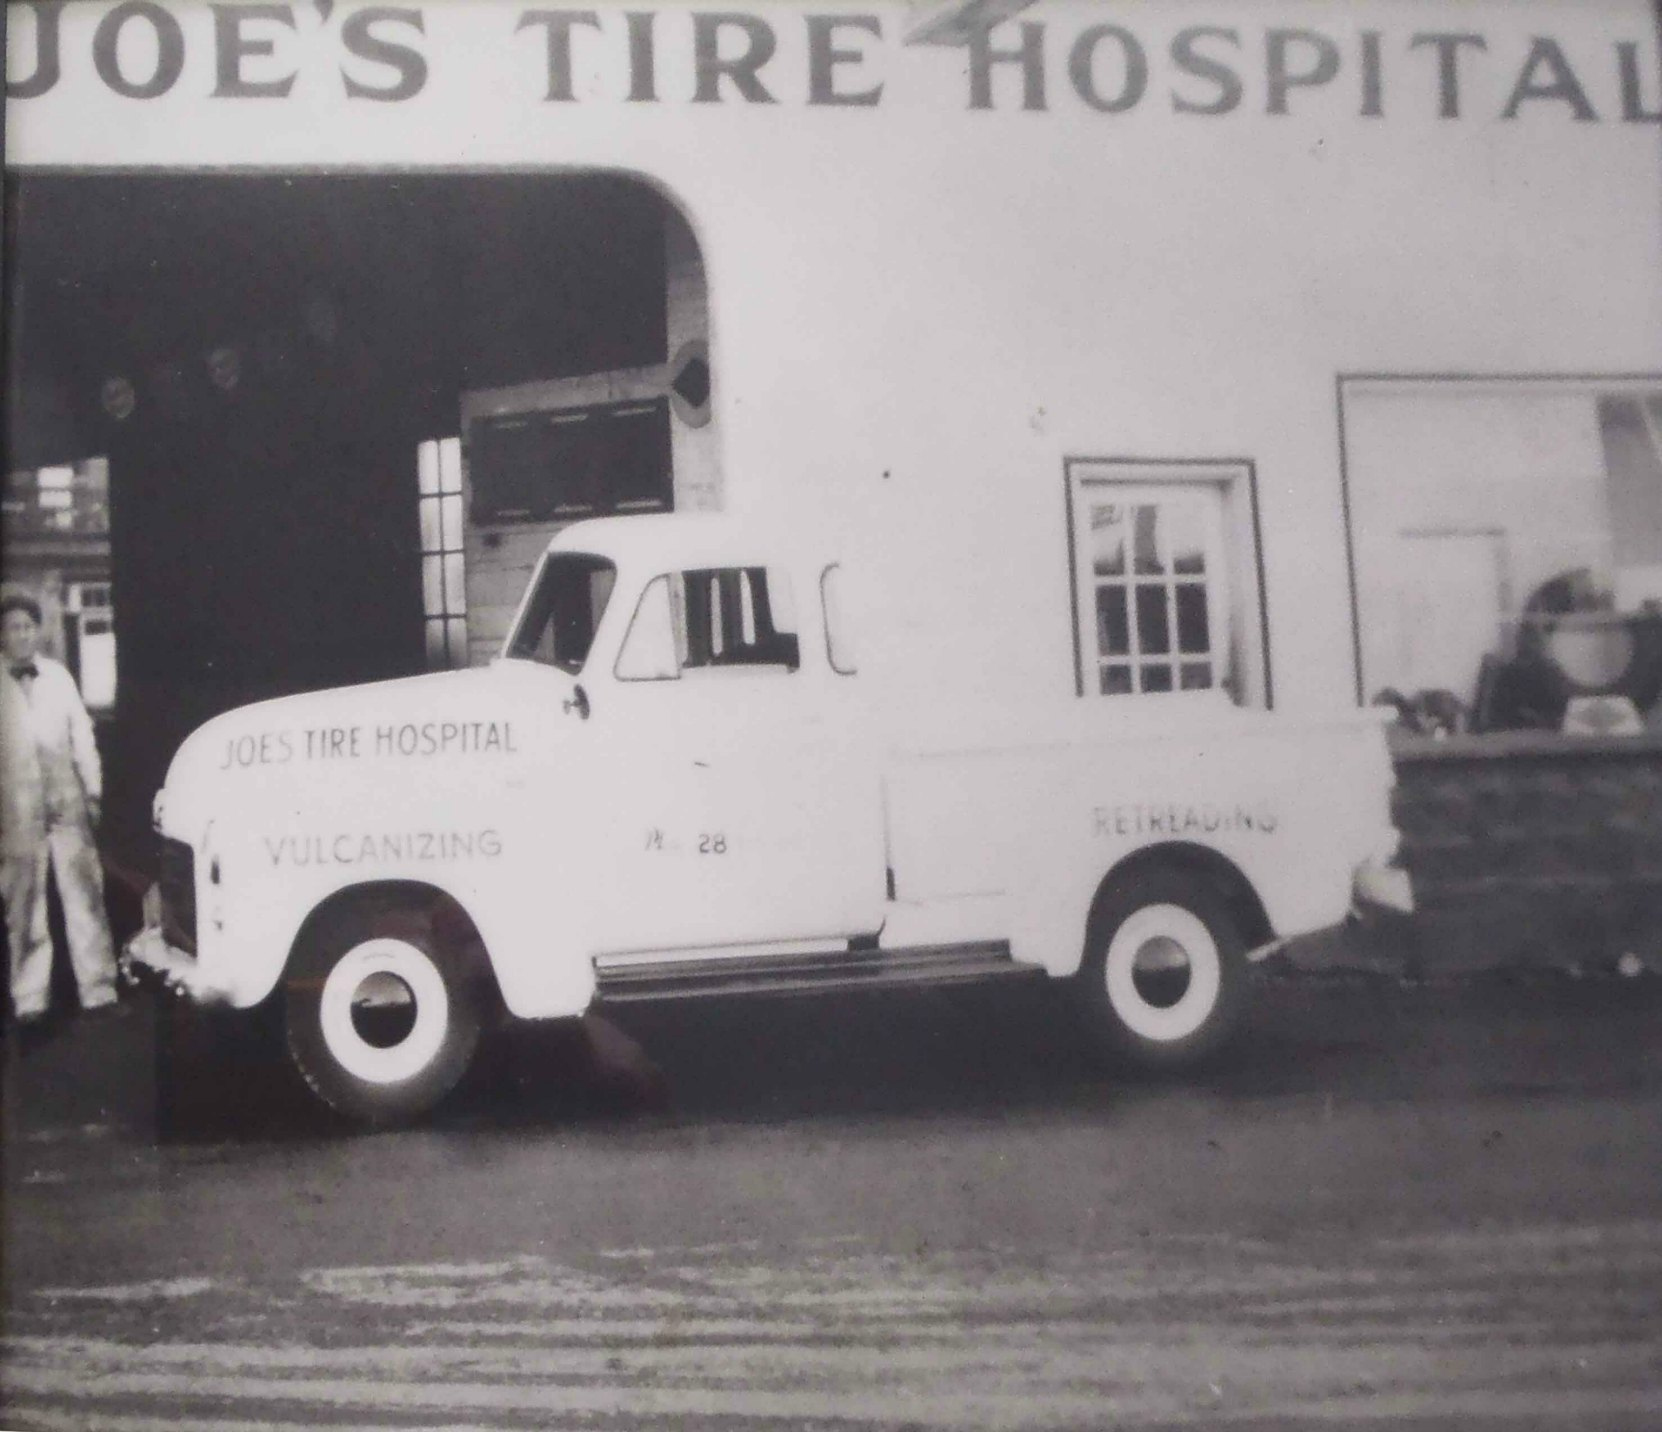 Joe's Tire Hospital founder Joe Drennan at Joe's Tire Hospital, 176 Government Street, circa 1940.